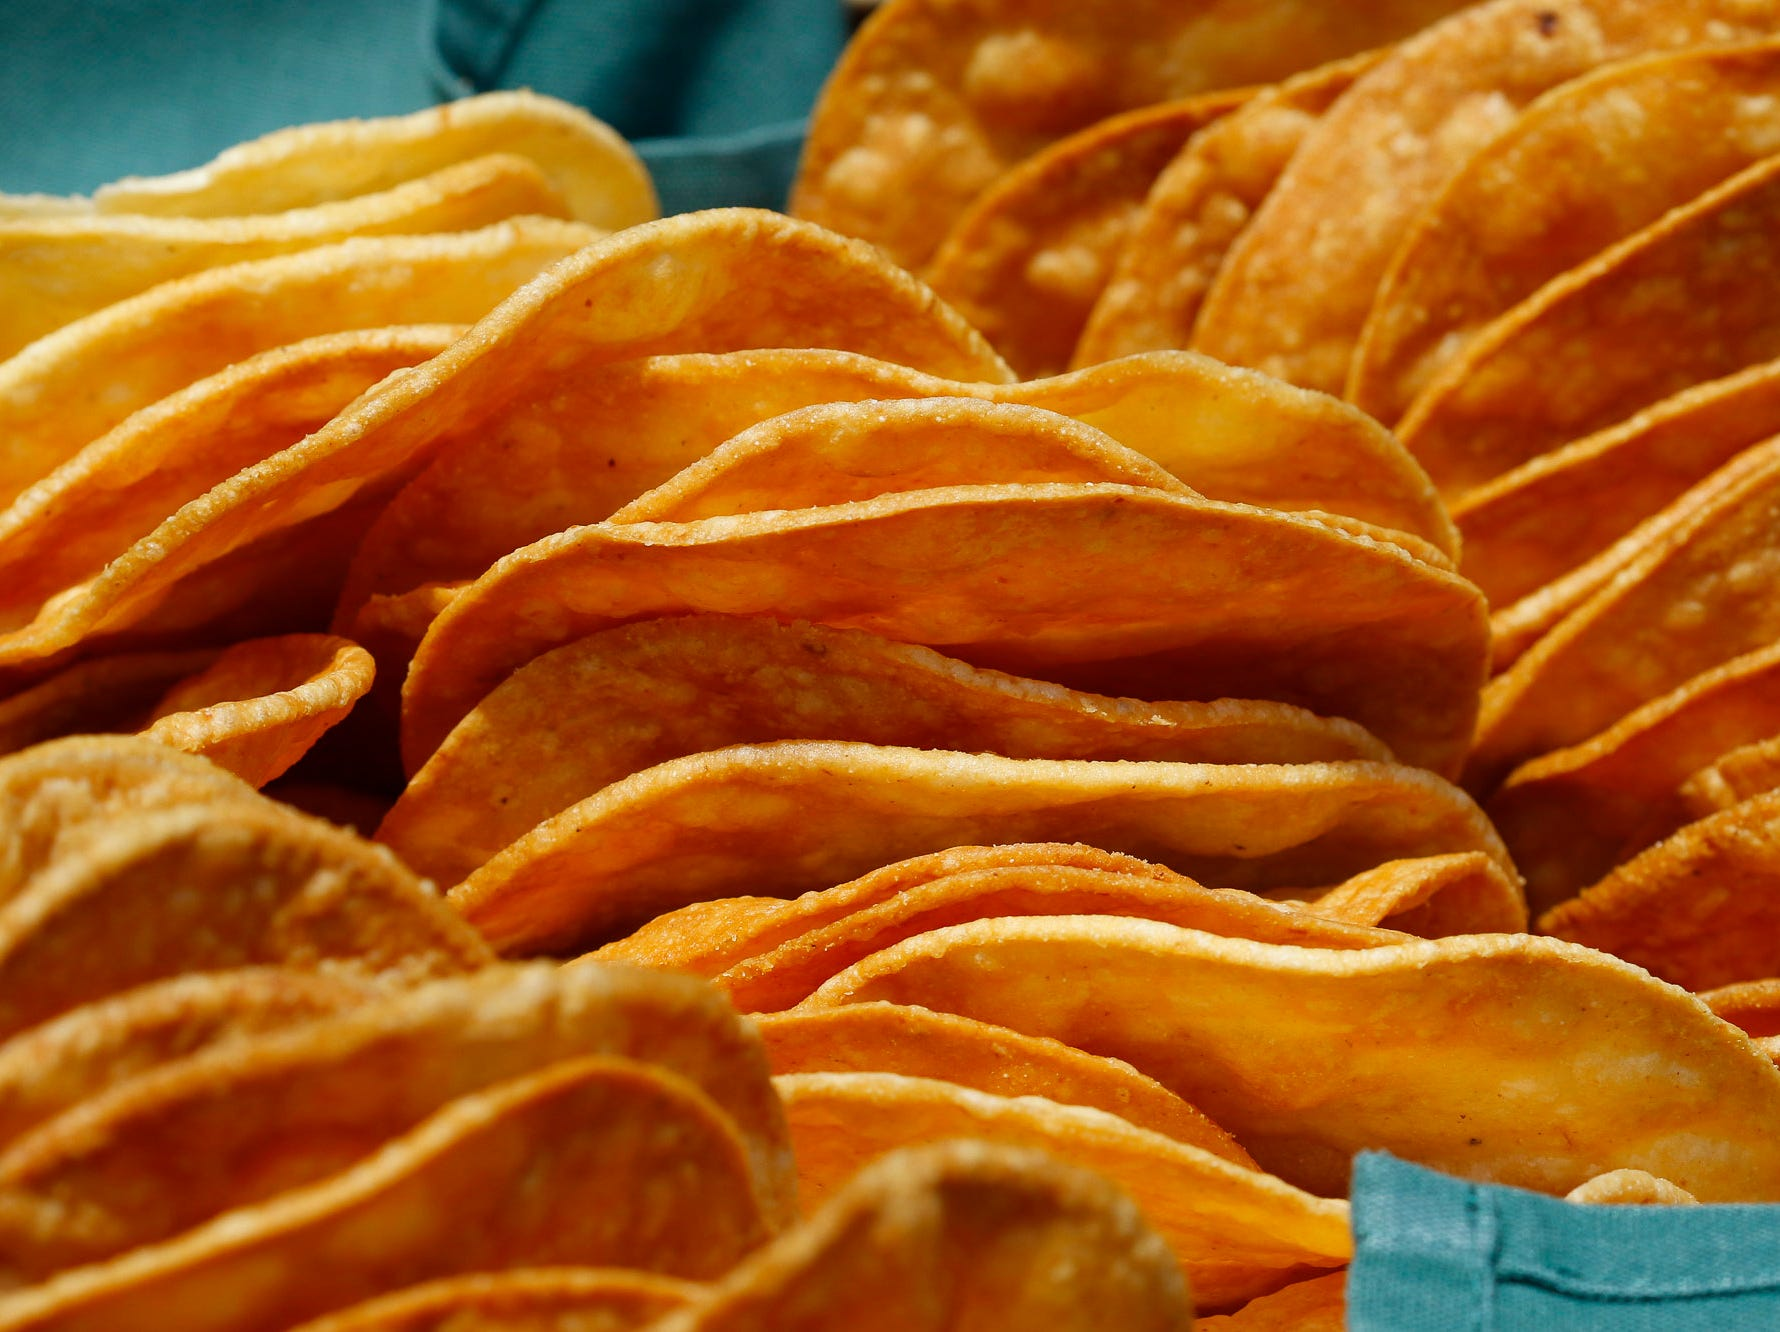 Taco shells are pictured during the 2018 Salinas Valley Food and Wine Festival which takes place on Main Street in Old Town Salinas on Saturday, August 11, 2018.